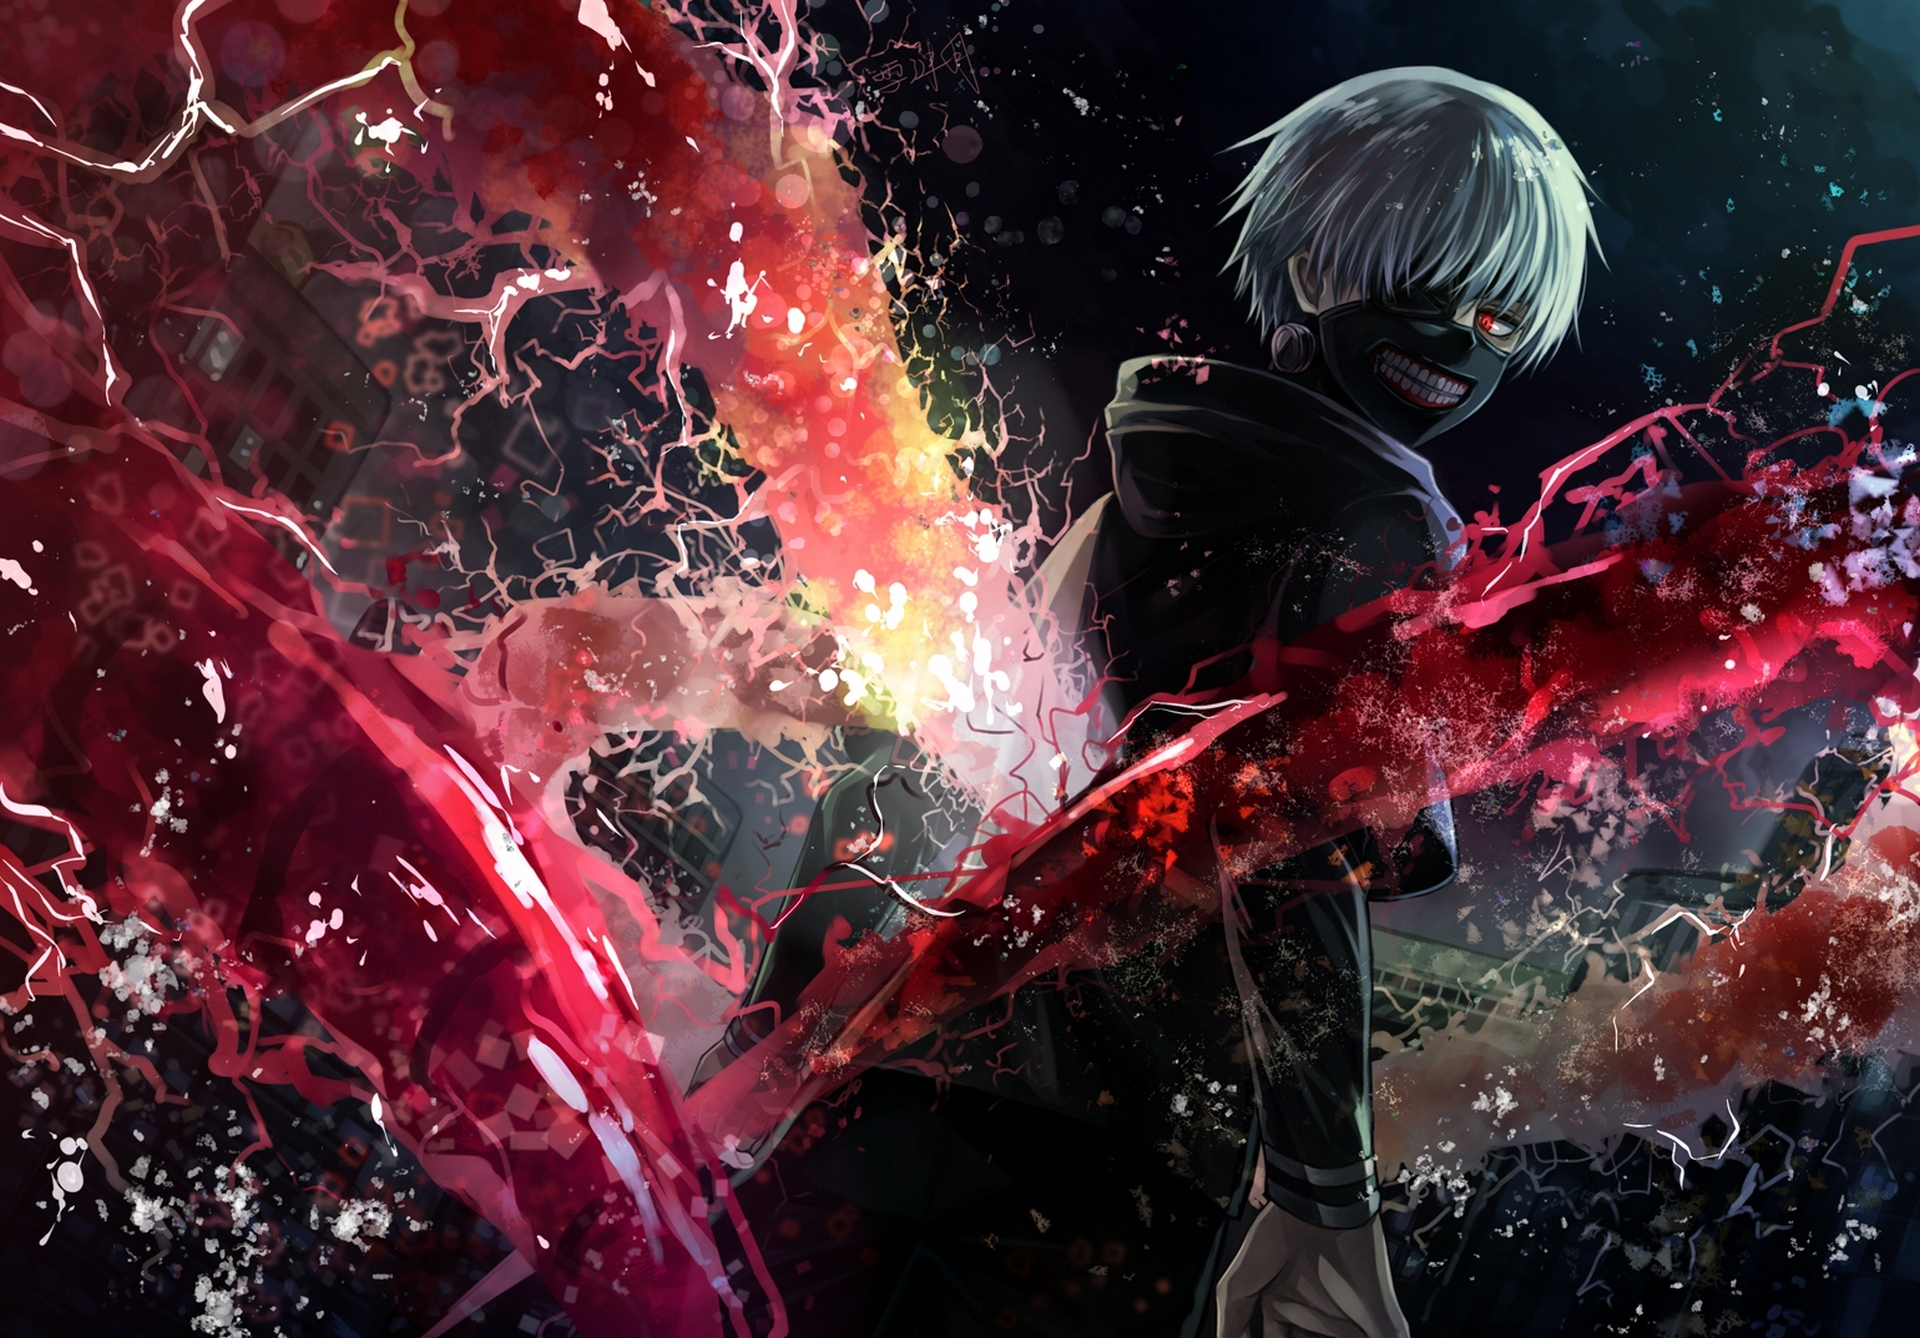 tokyo ghoul full hd wallpaper and background image | 1920x1338 | id